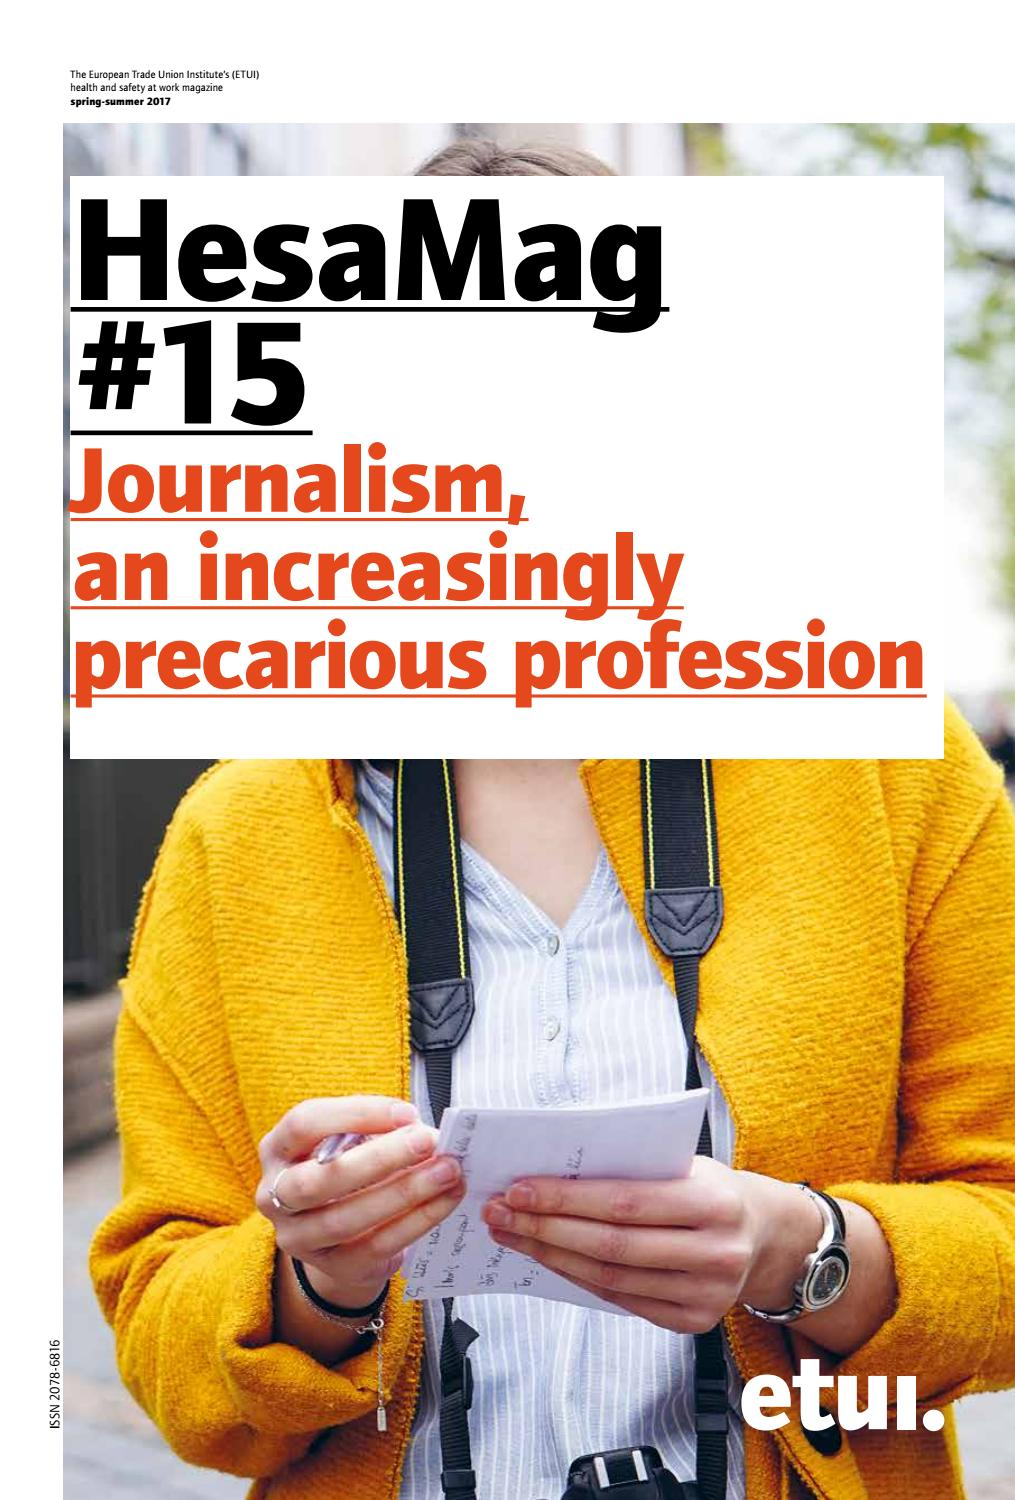 Hesamag 15: Journalism, an increasingly precarious profession